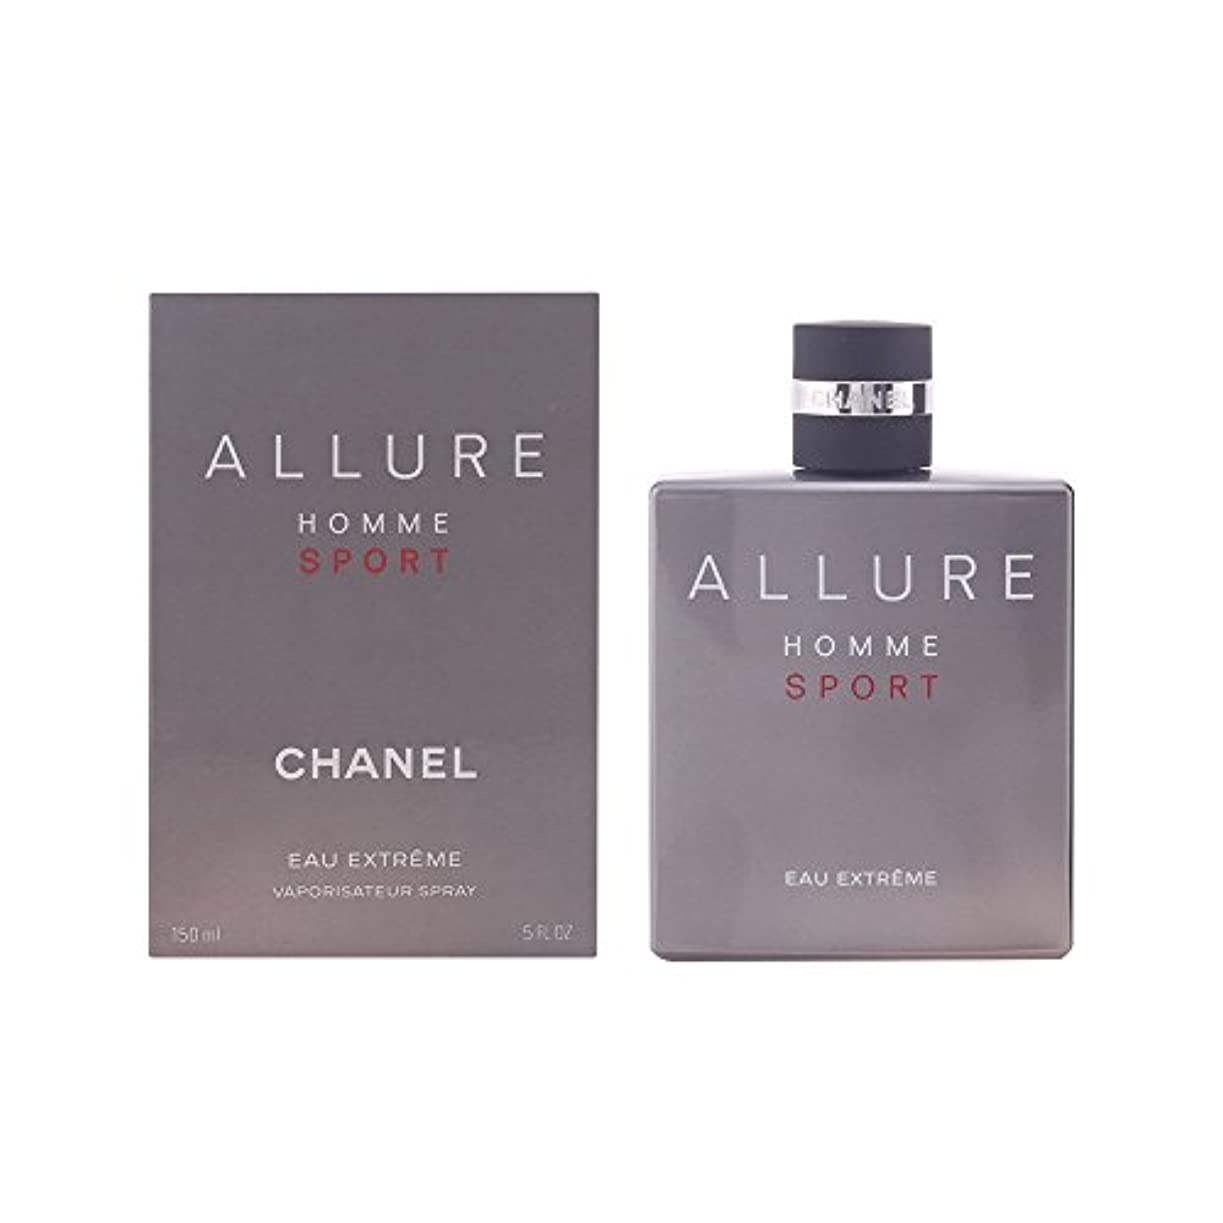 シャネル(CHANEL) Allure Homme Sport Eau Extreme Eau De Parfum Spray 150ml/5oz[並行輸入品]